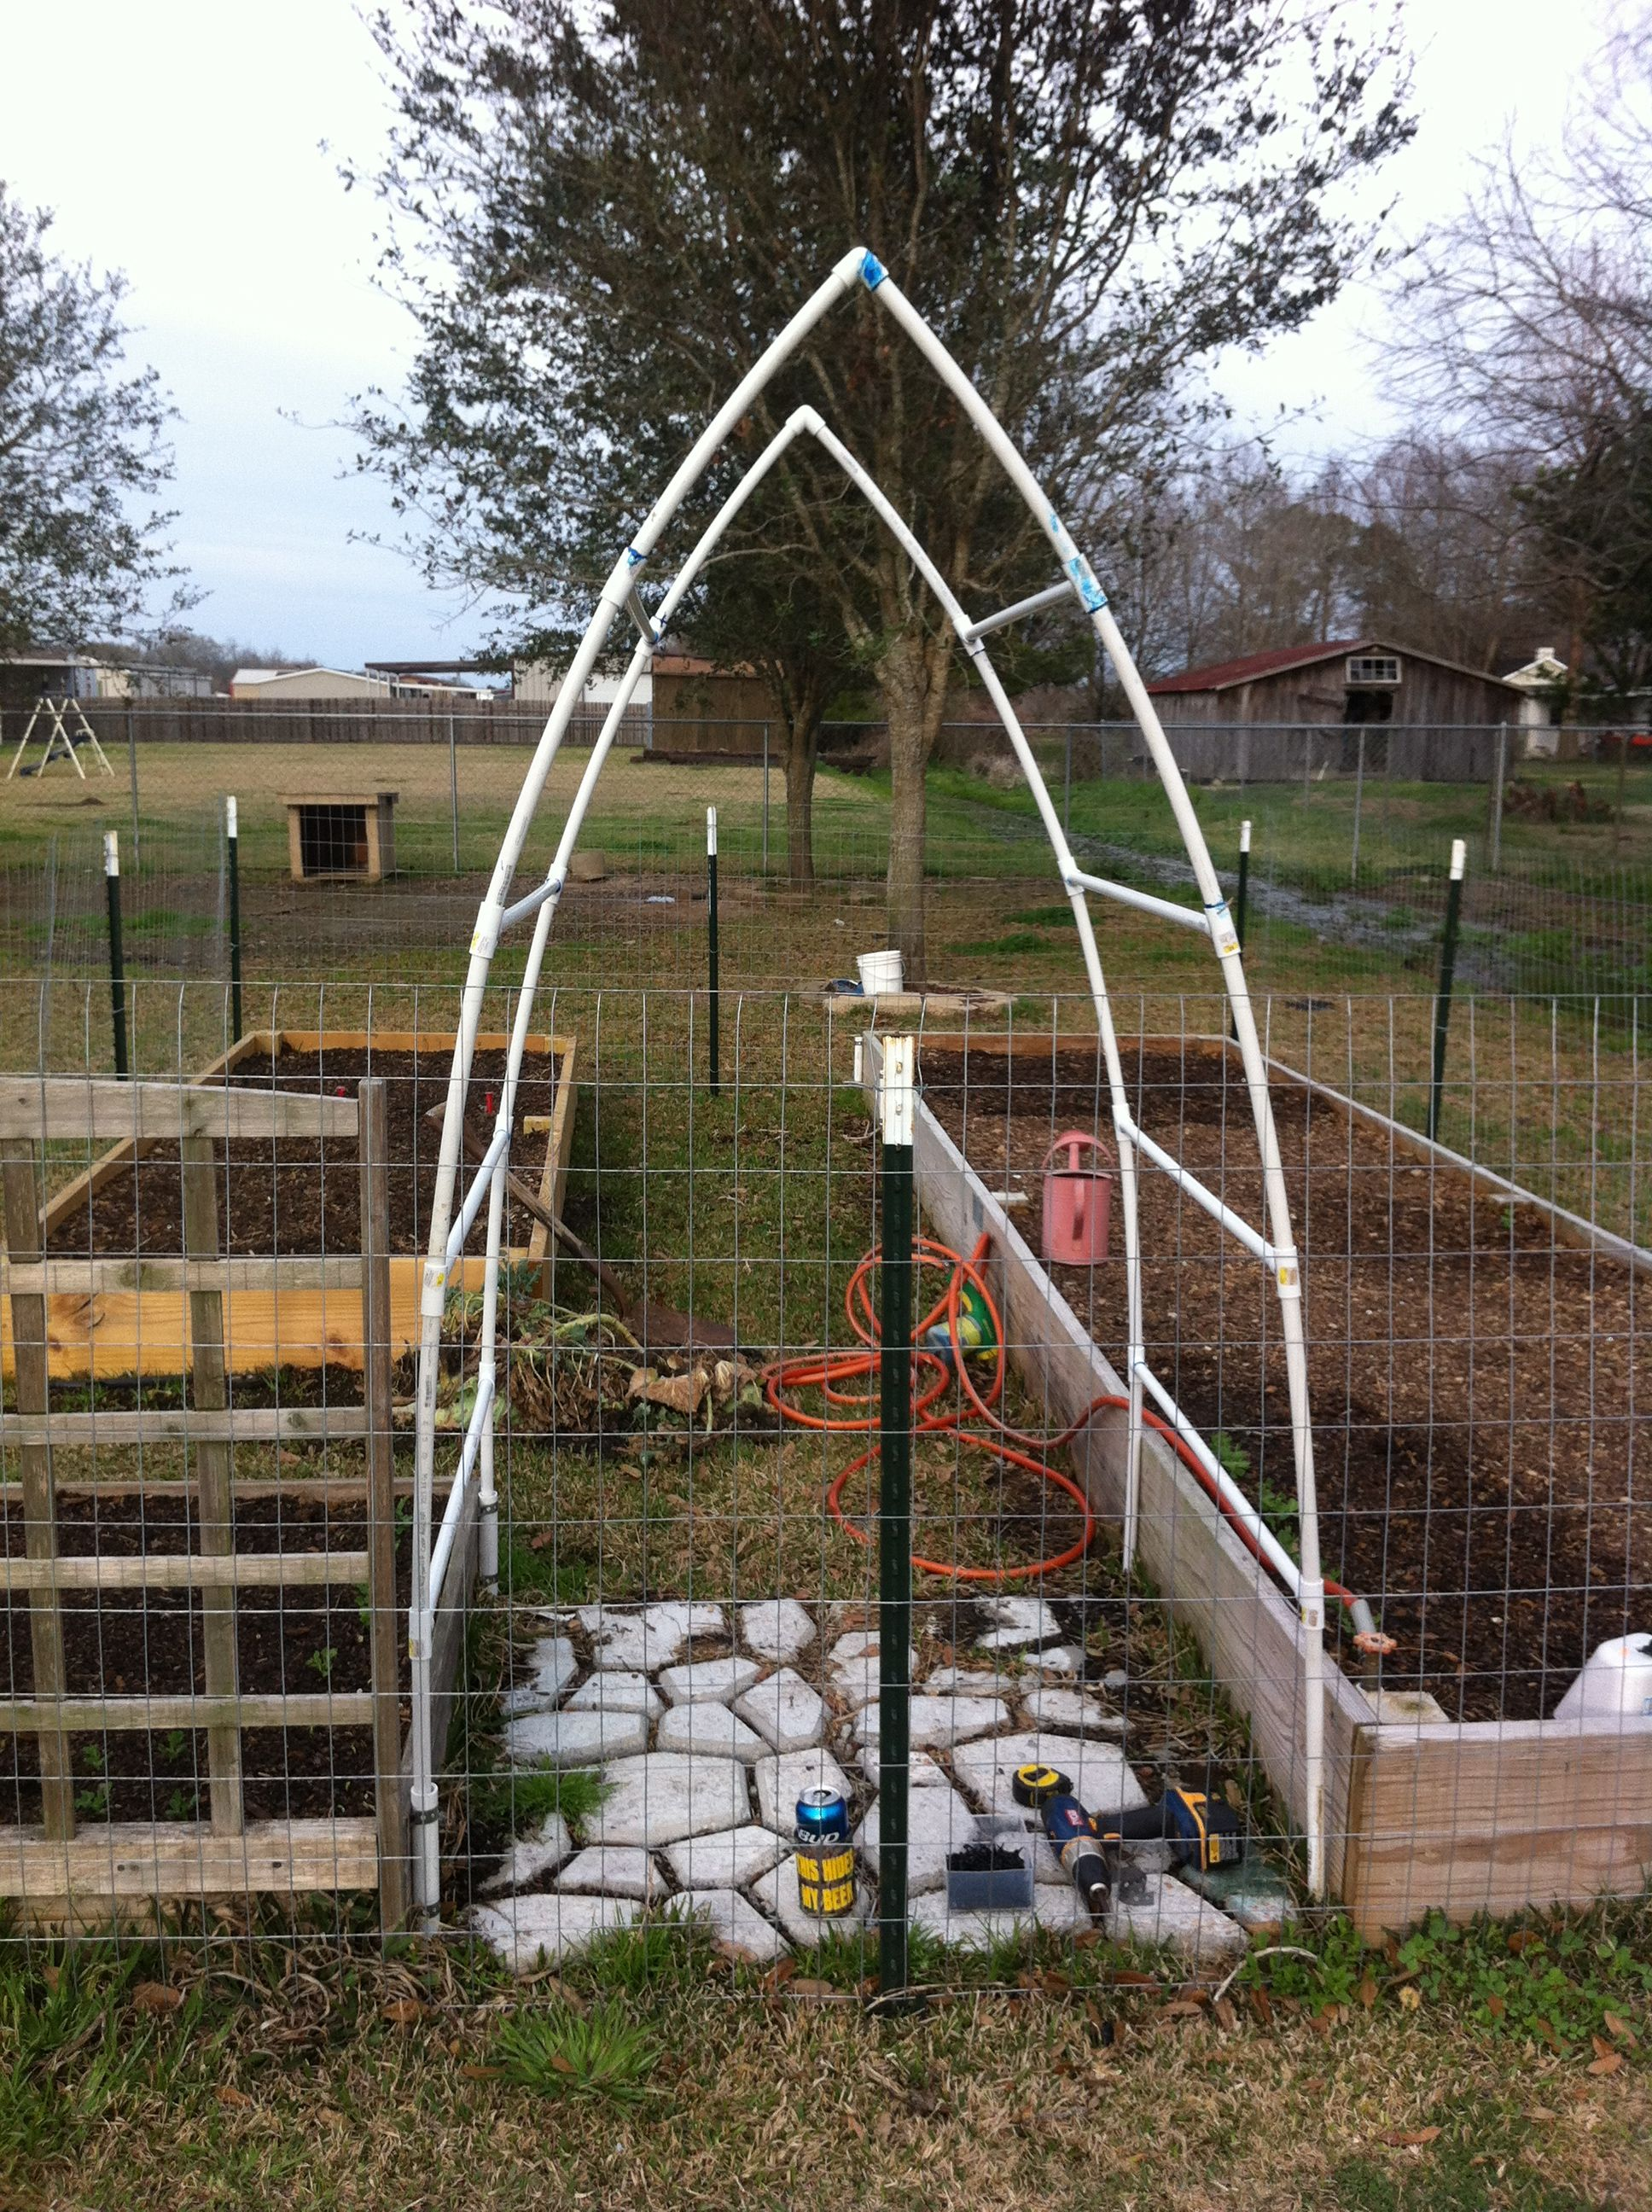 This Is A Garden Trellis We Made From PVC. Planted The Plants Close To Edge